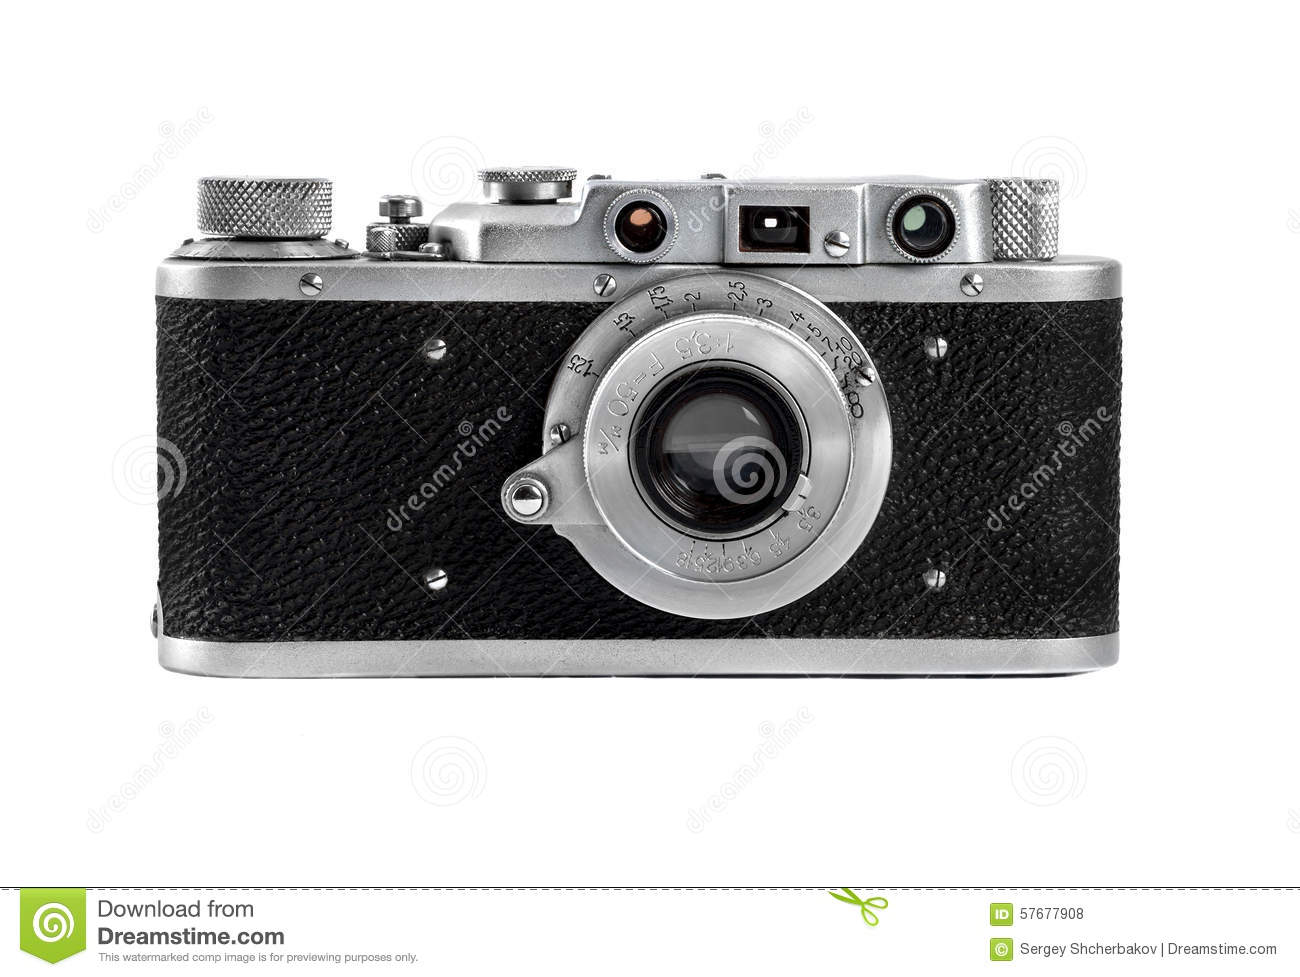 Russian camera FED 1930 production